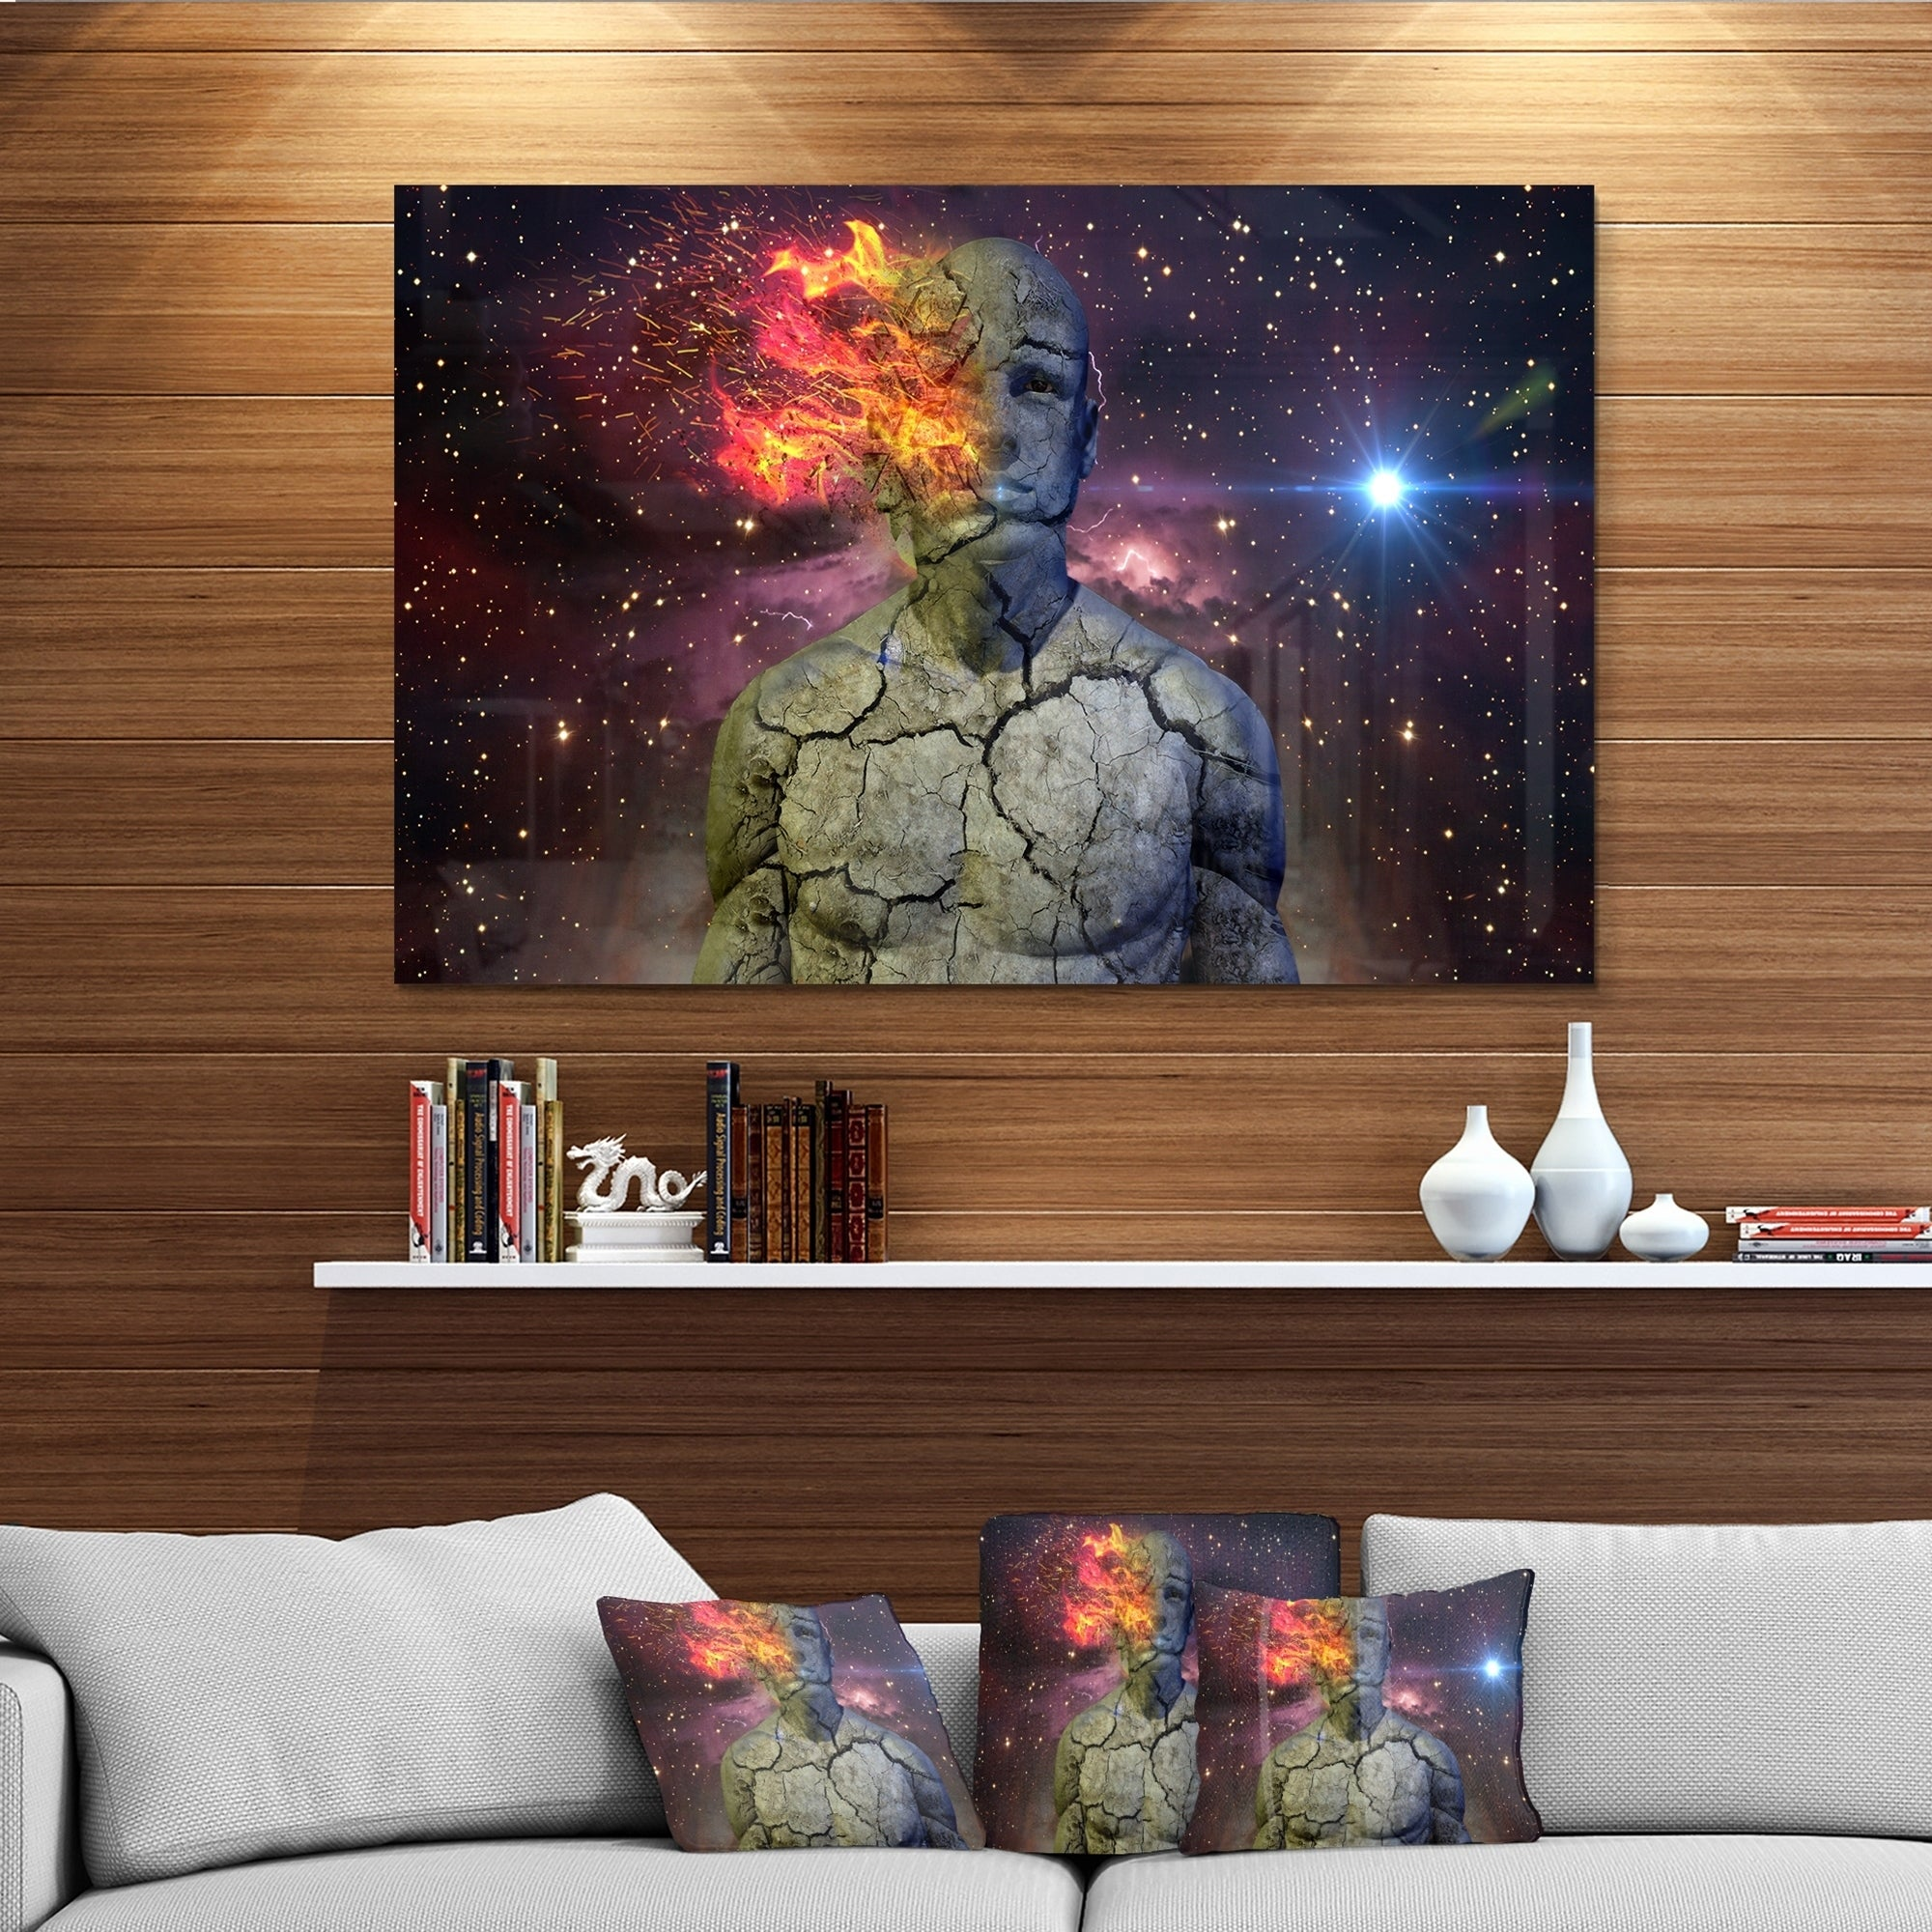 Broken Human Body With Fire Abstract Art Glossy Metal Wall Art Overstock 12750320